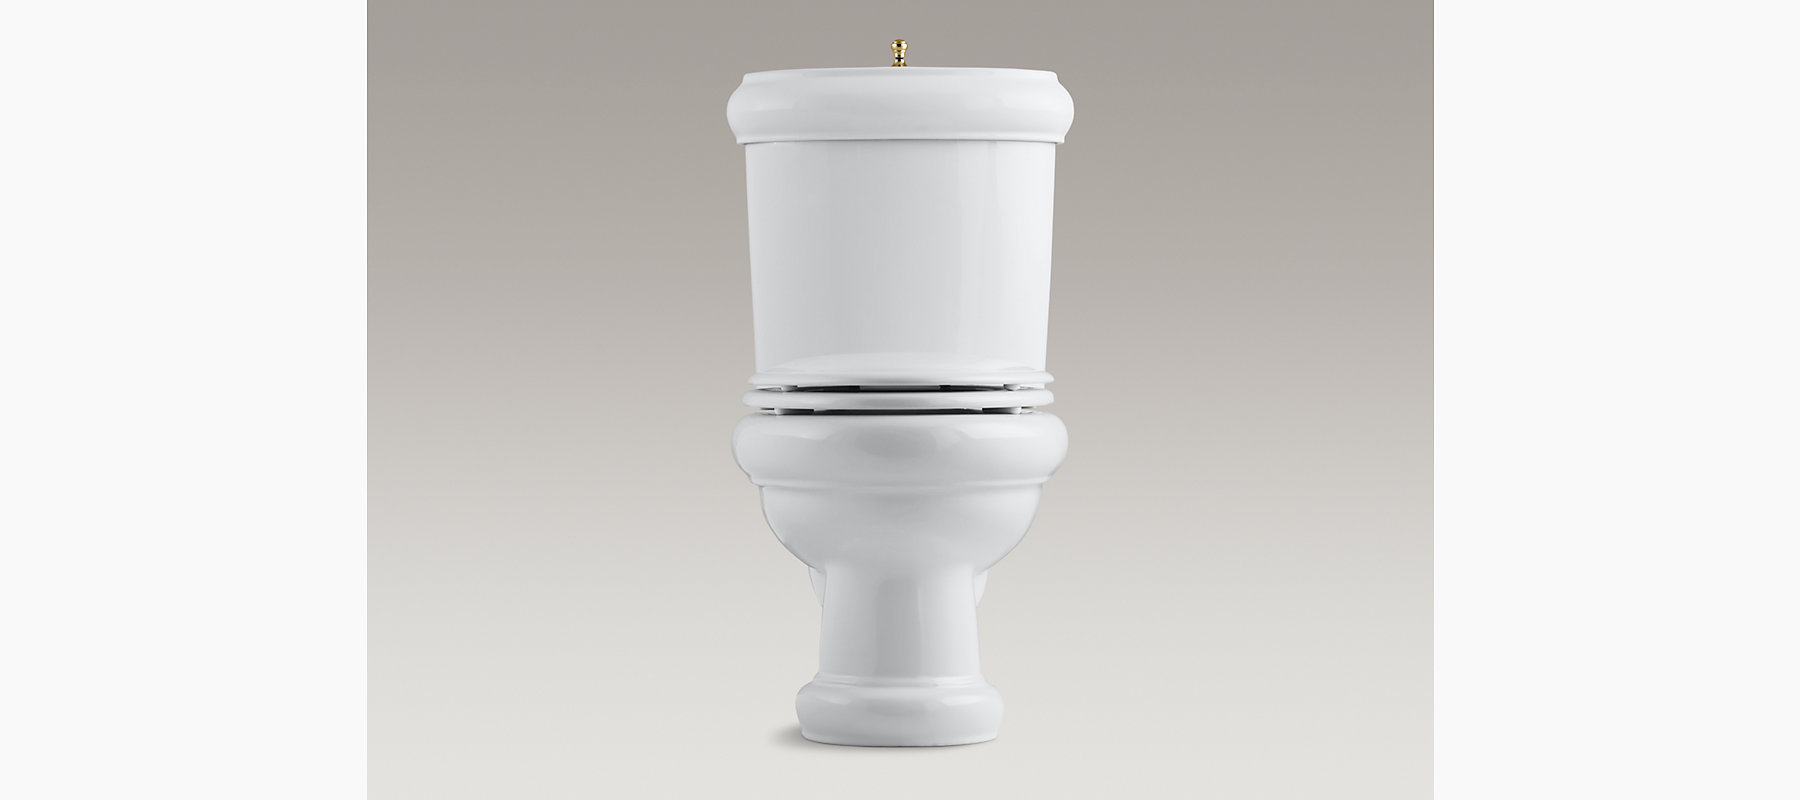 Kohler K 3555 Br Revival Two Piece Elongated 1 6 Gpf